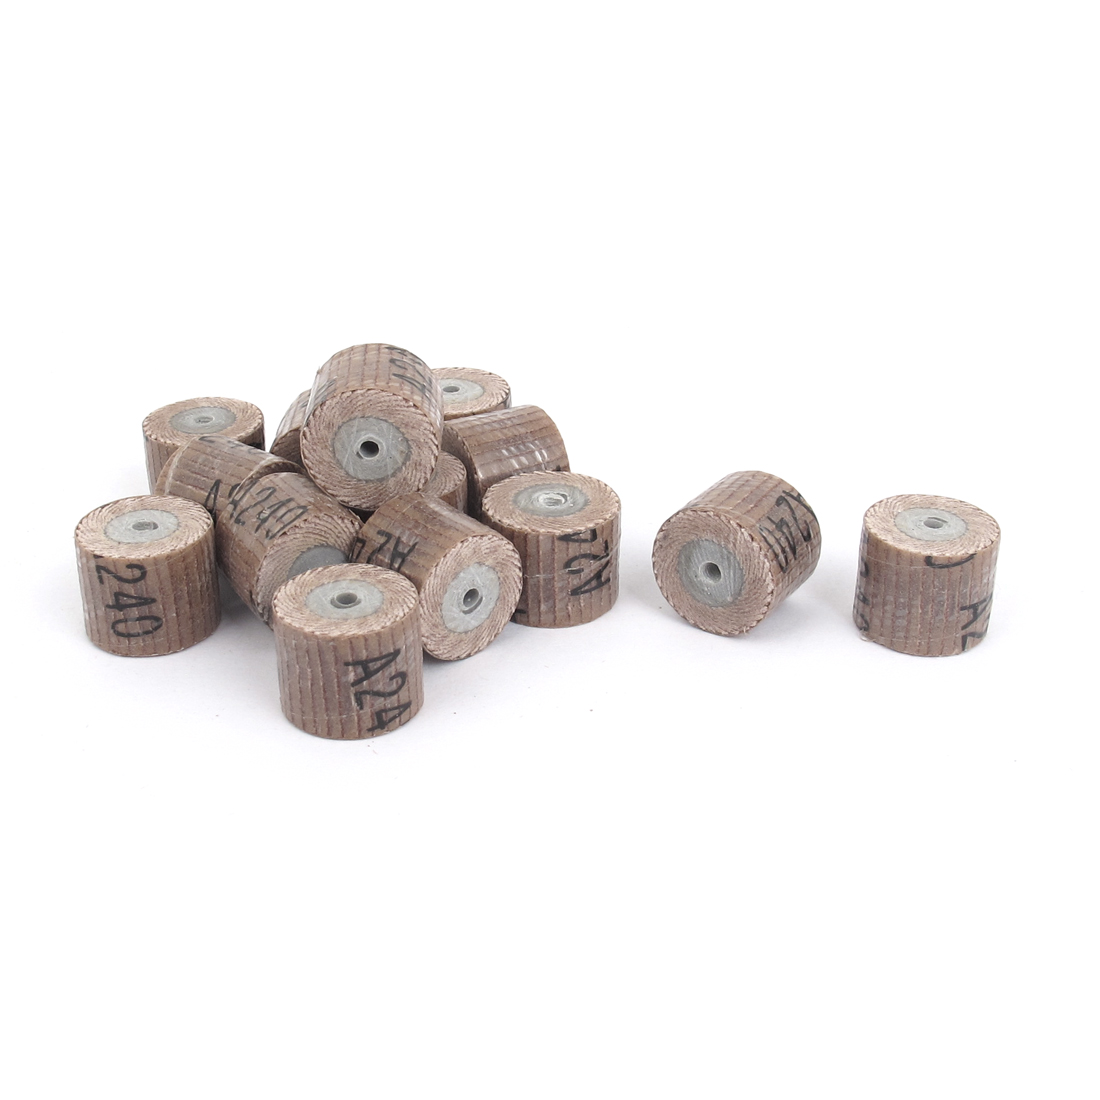 12Pcs 240 Grit 3mm Mandrel Flap Wheel Grinding Heads 15mmx14mm for Rotary Tools